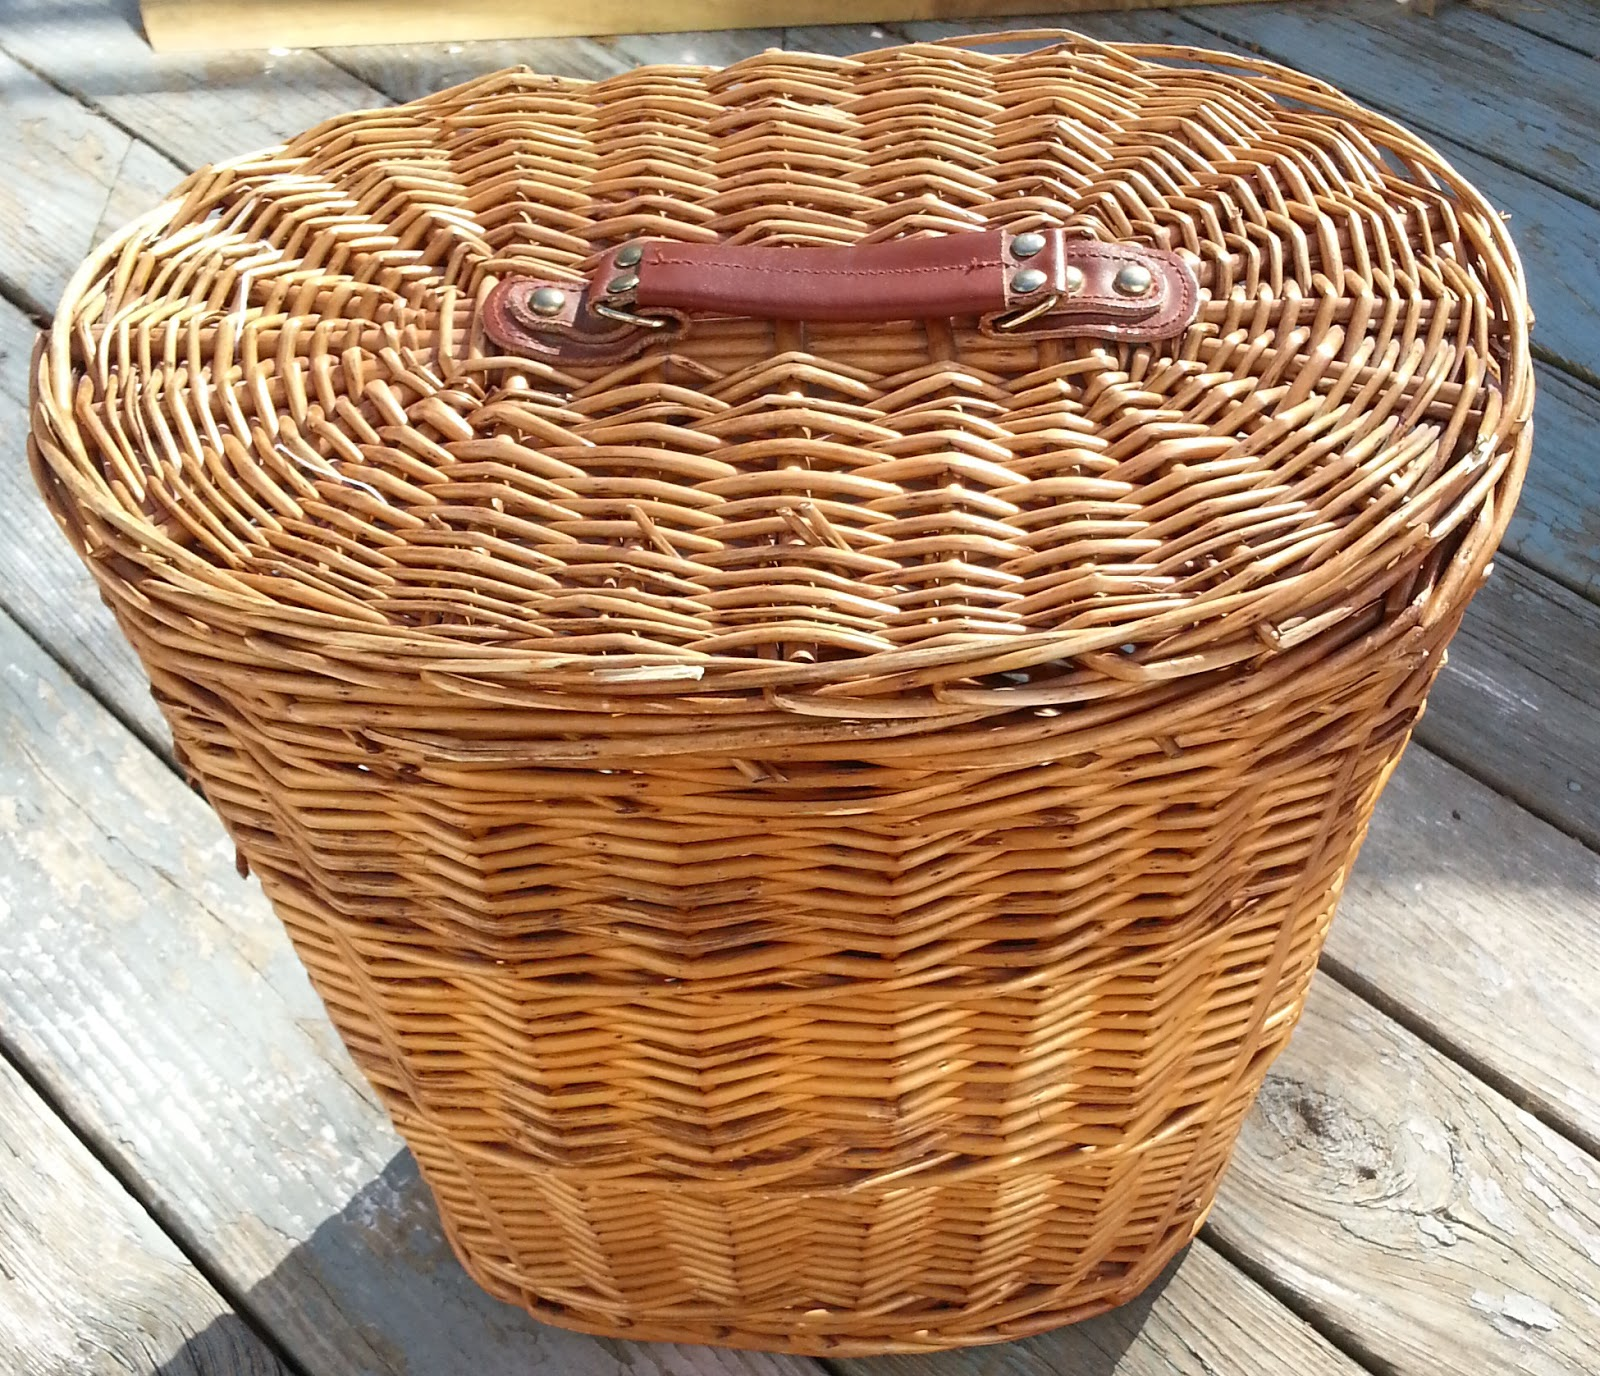 Small wicker hamper